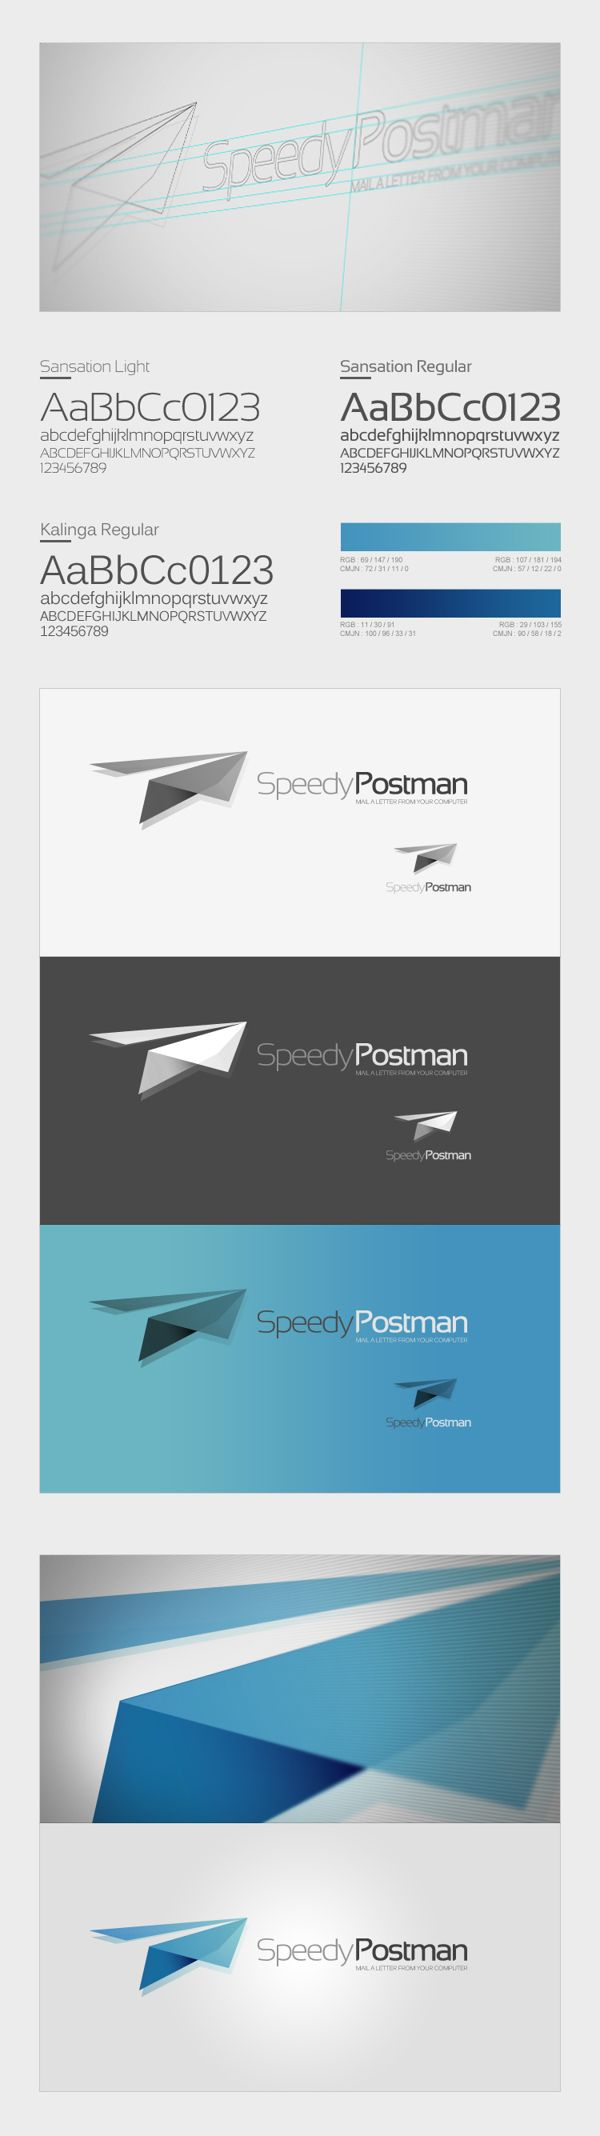 Branding | Speedy Services Concept by Thomas Le Corre, via Behance